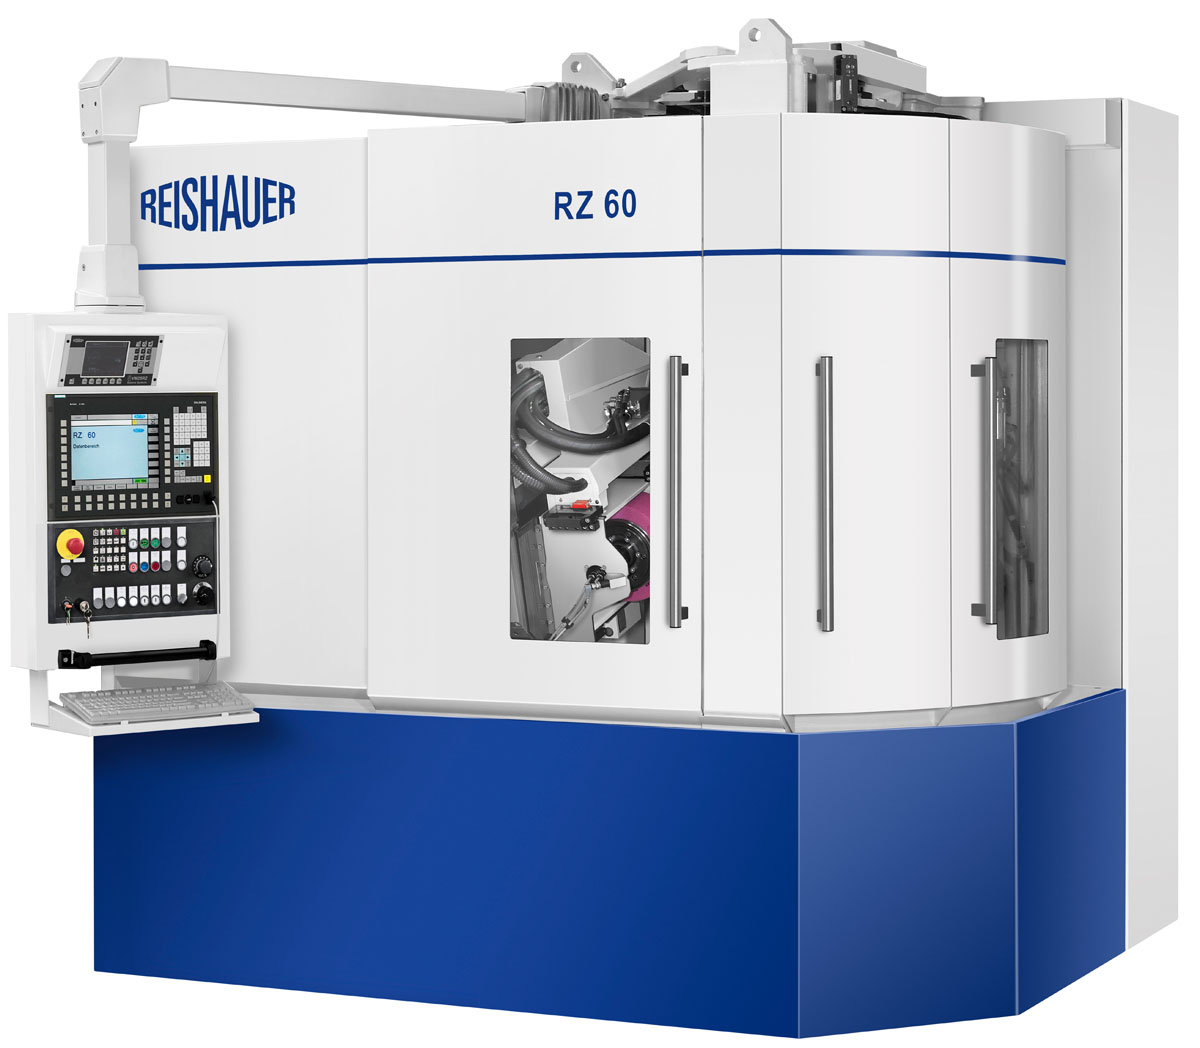 RZ 60 The workhorse of planetary gear manufacture